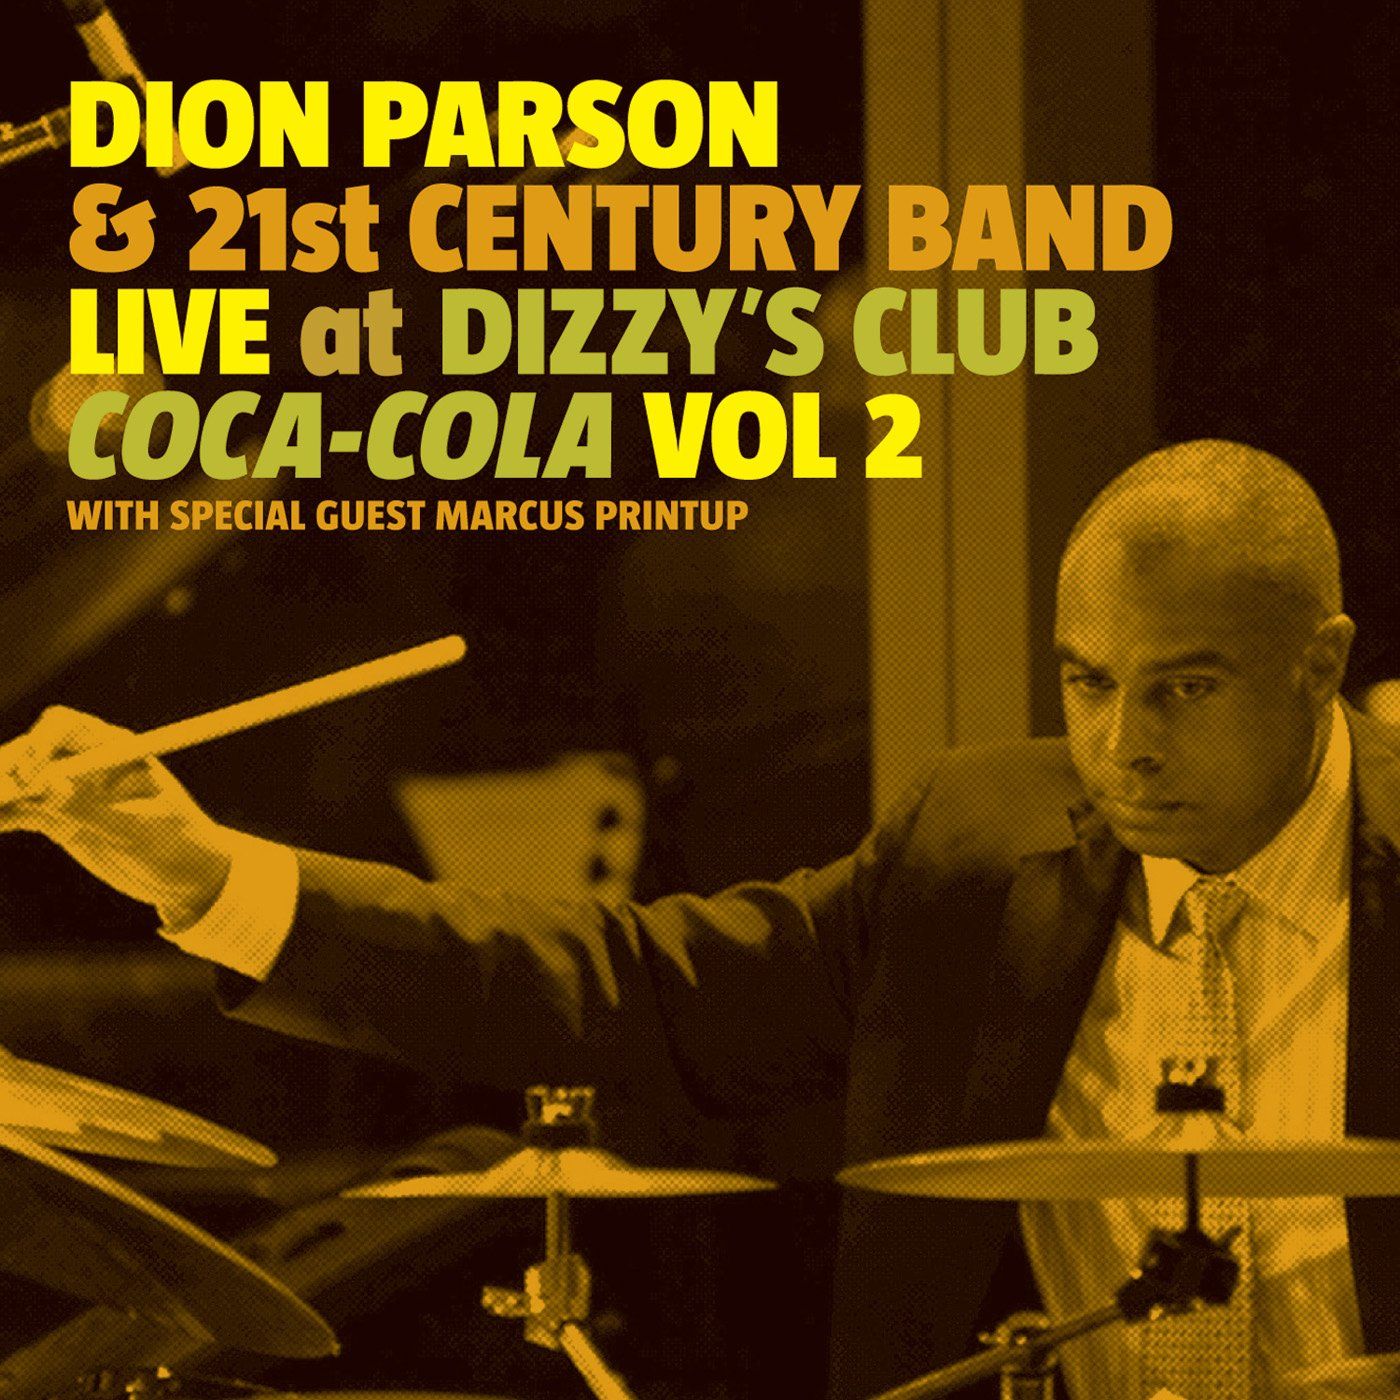 CD : Dion Parson - Live At Dizzy's Club Coca-cola 2 (2PC)